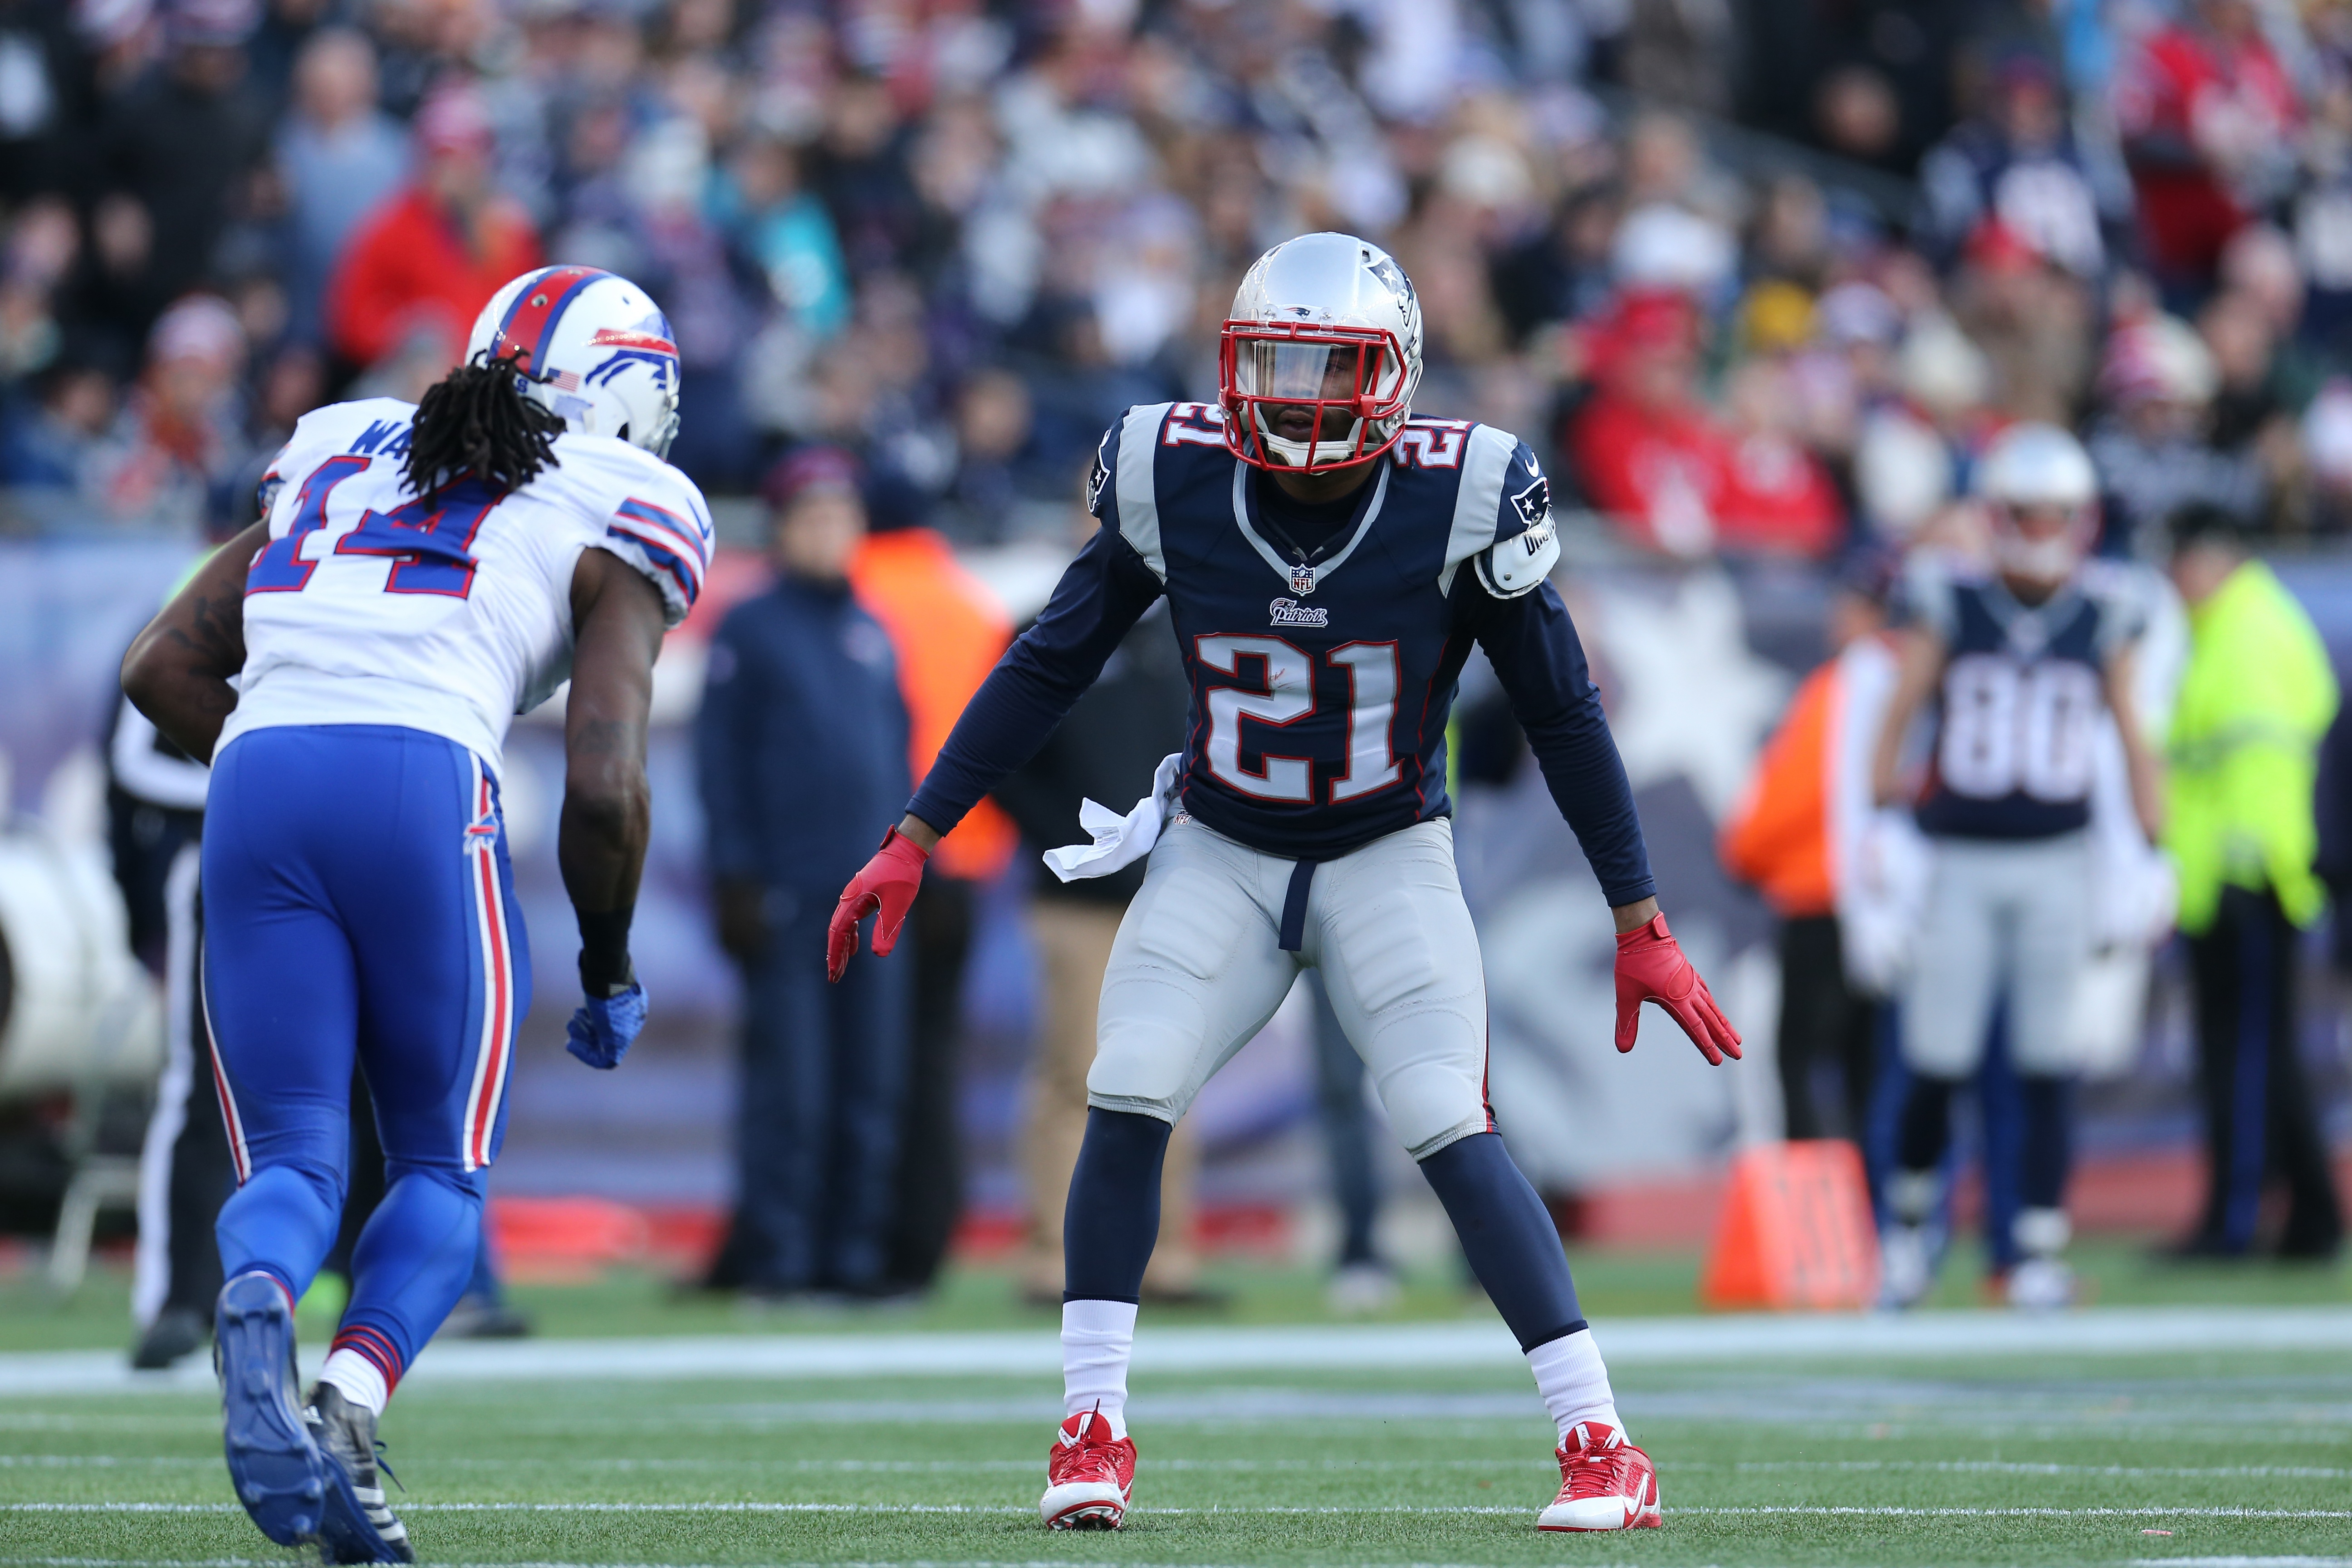 Malcolm_Butler_action_Pats_2014.jpg